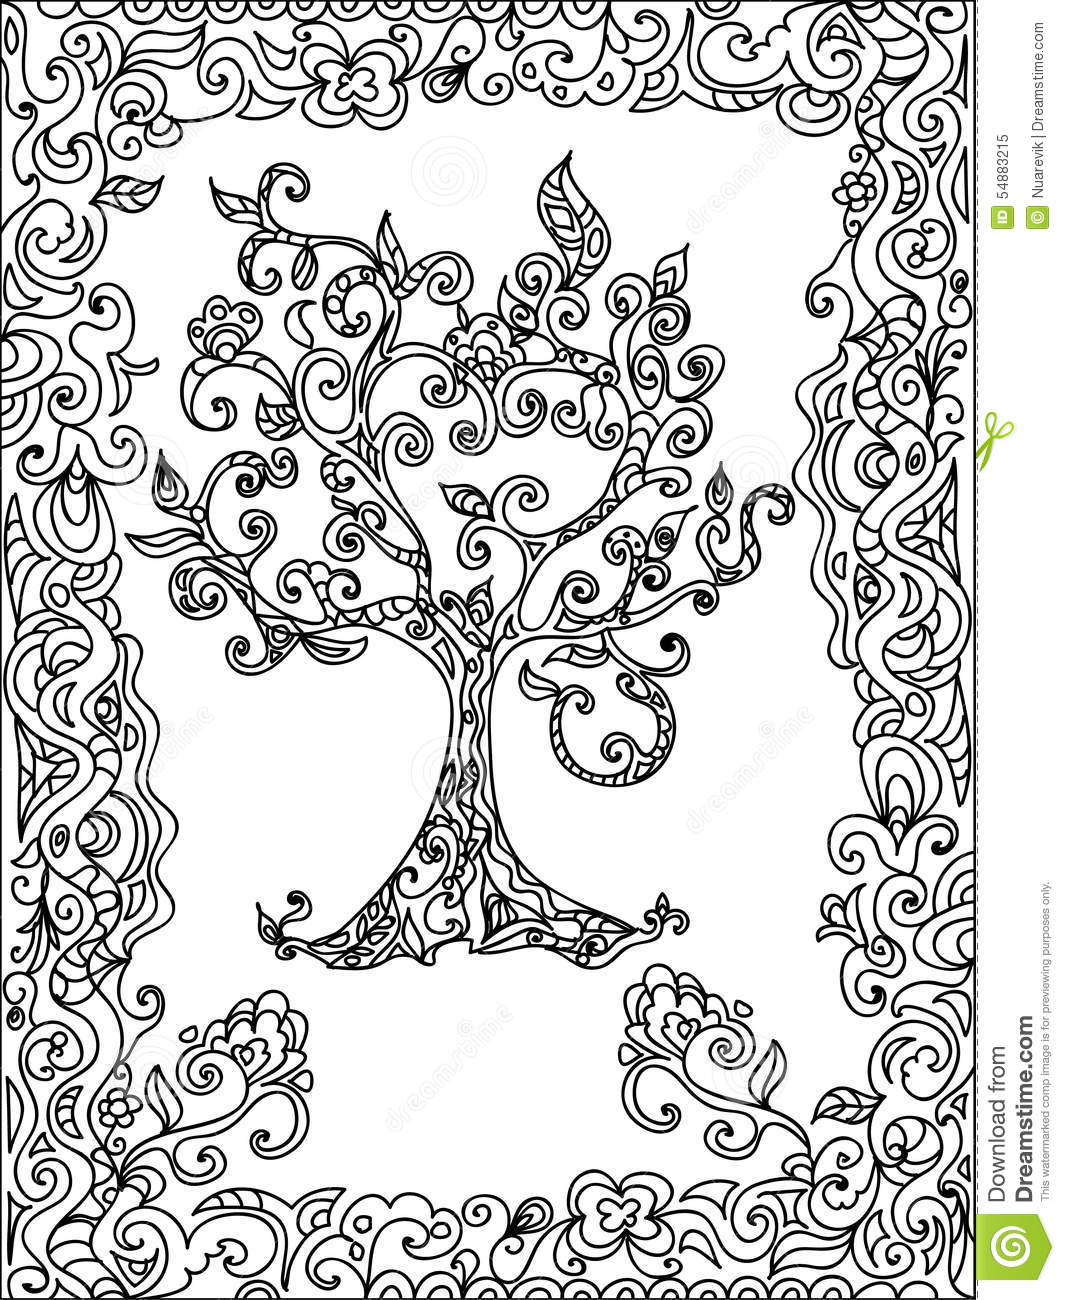 coloring isolated page tree white zentangle - Zentangle Coloring Pages